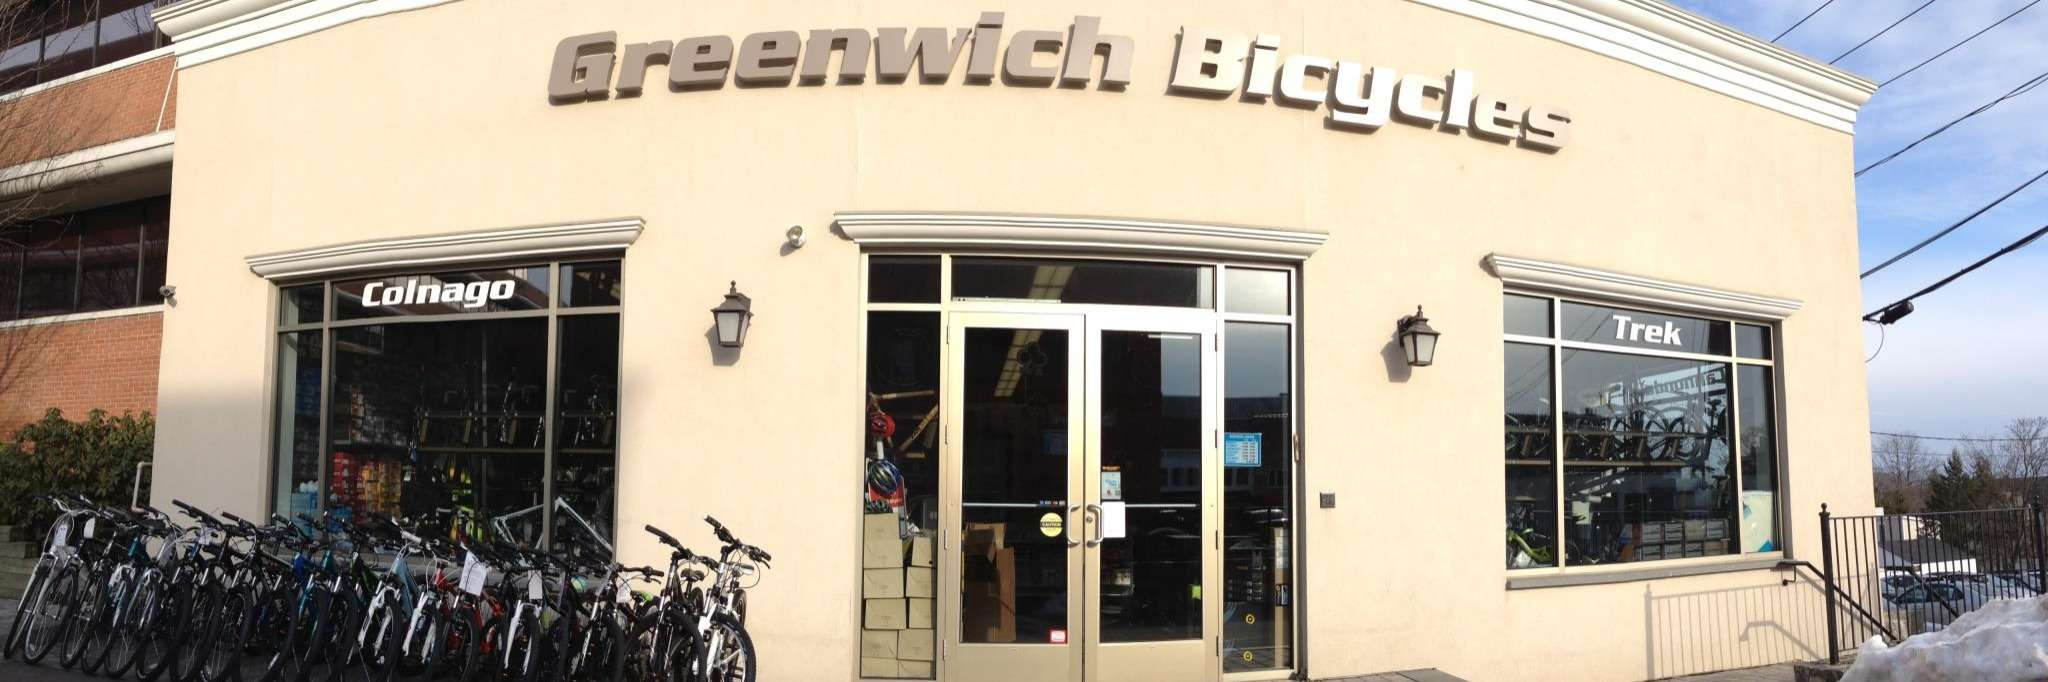 Greenwich Bicycles storefront